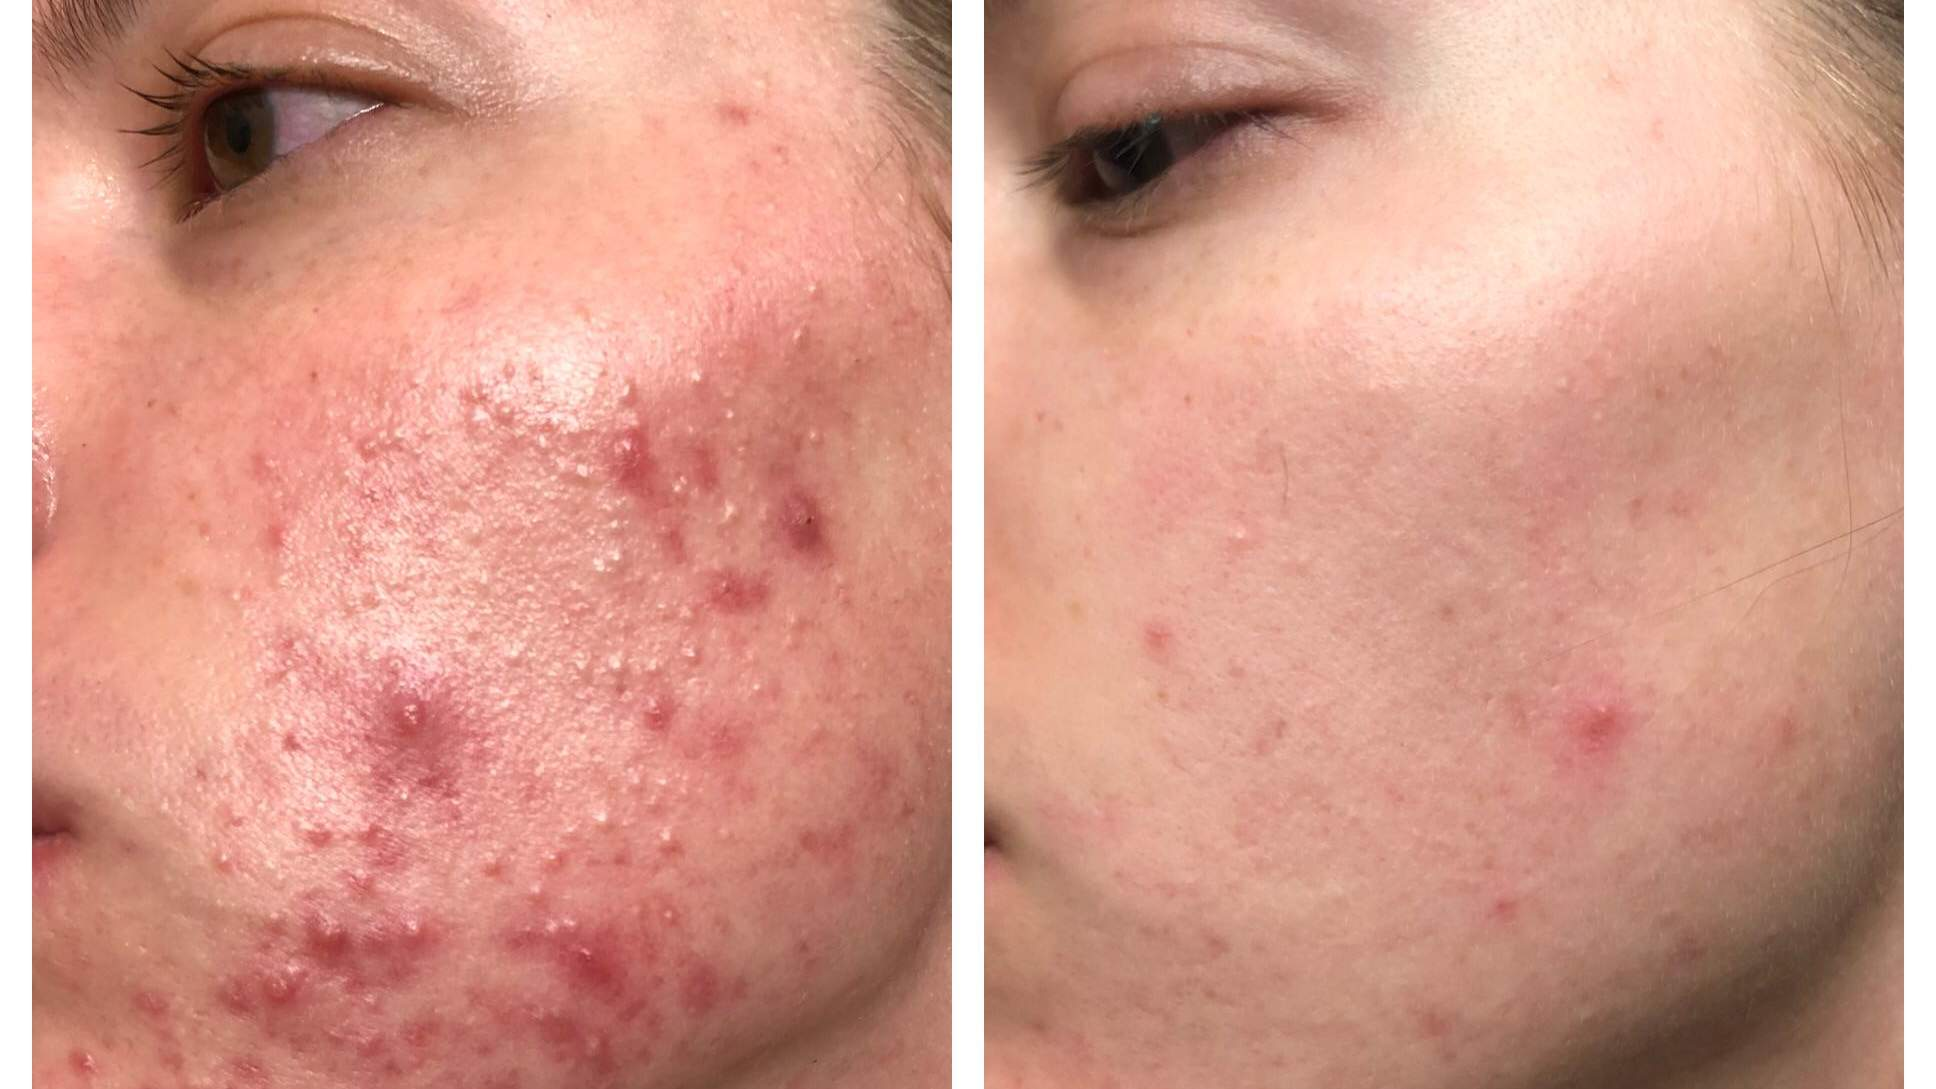 The Exact Skincare Products That Helped Clear This Woman's Cystic Acne In Just Three Months